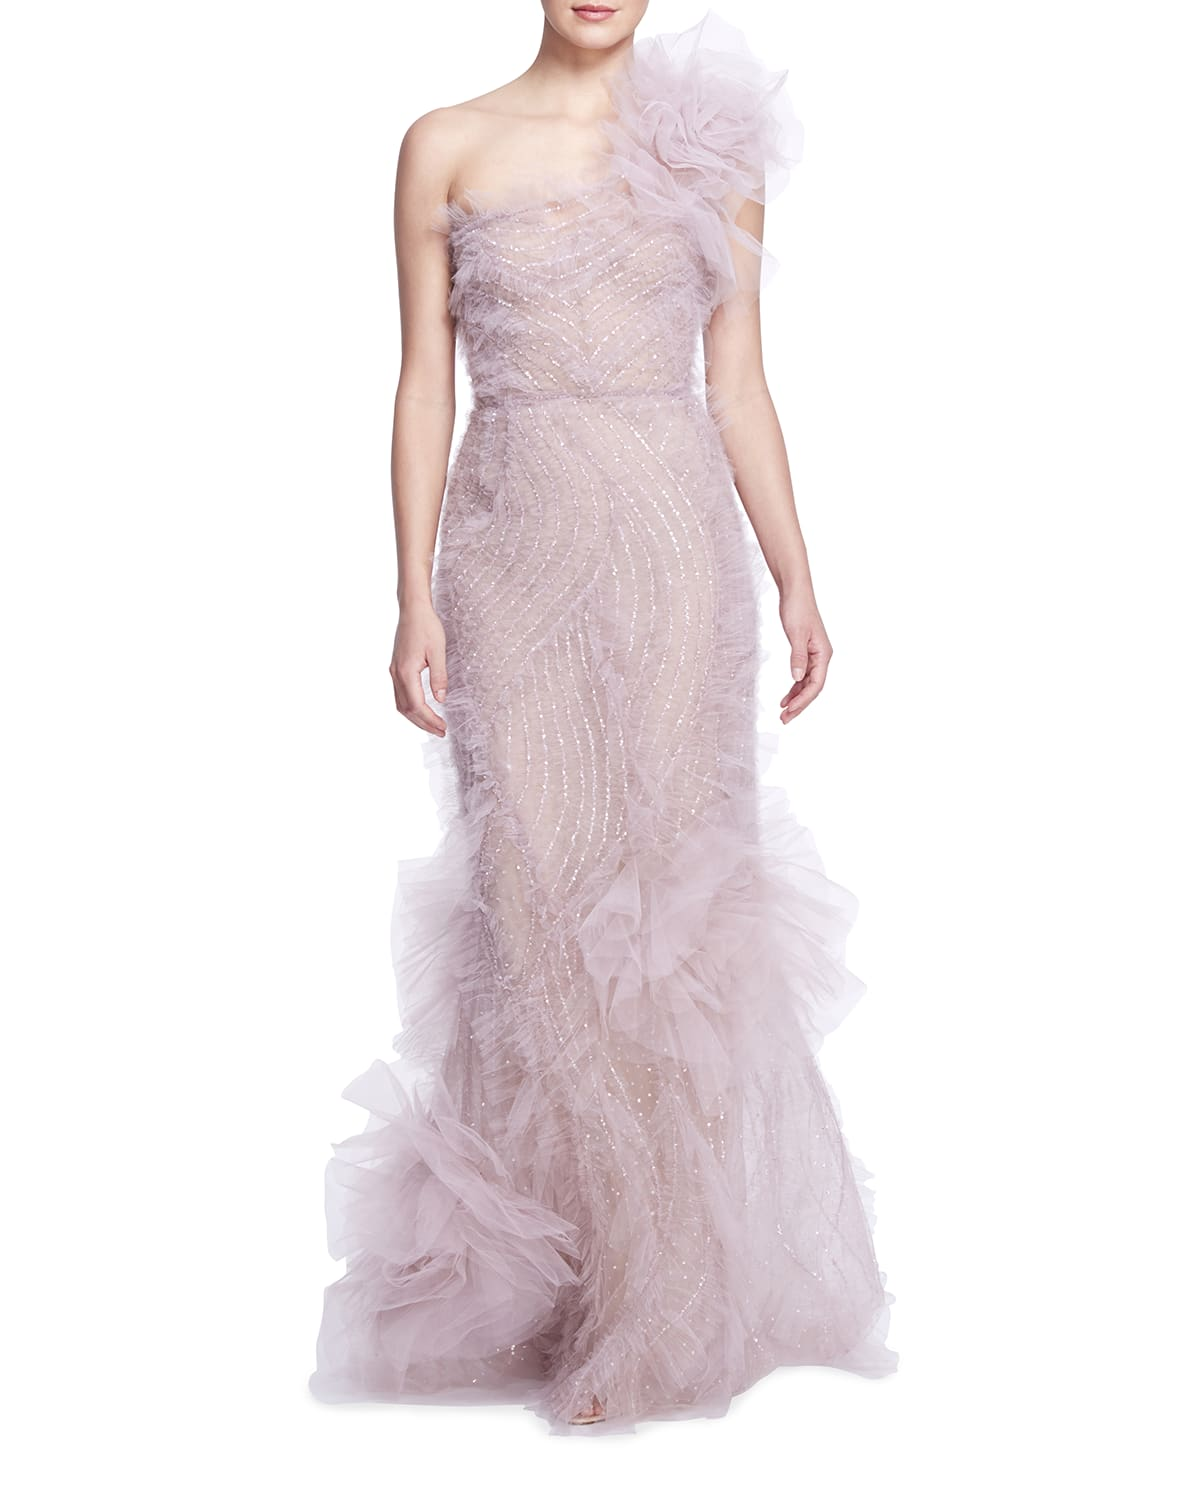 One-Shoulder Beaded Ephemeral Tulle Gown